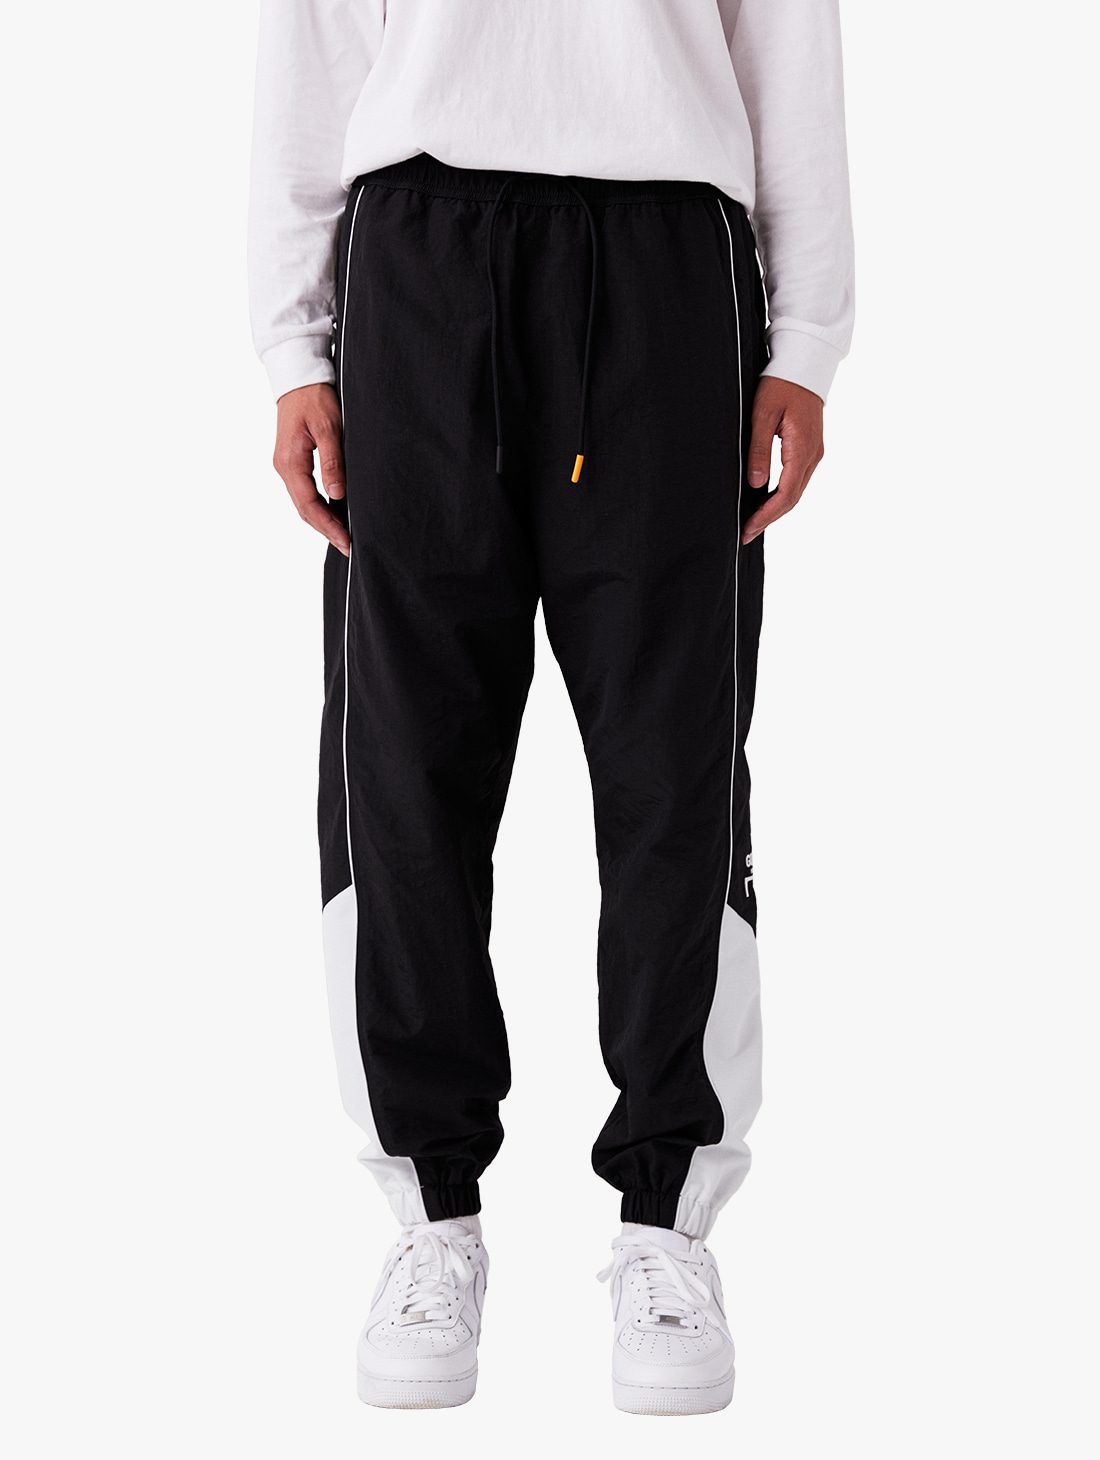 (Sold Out) WWFC TRACK PANTS (2 Colors)